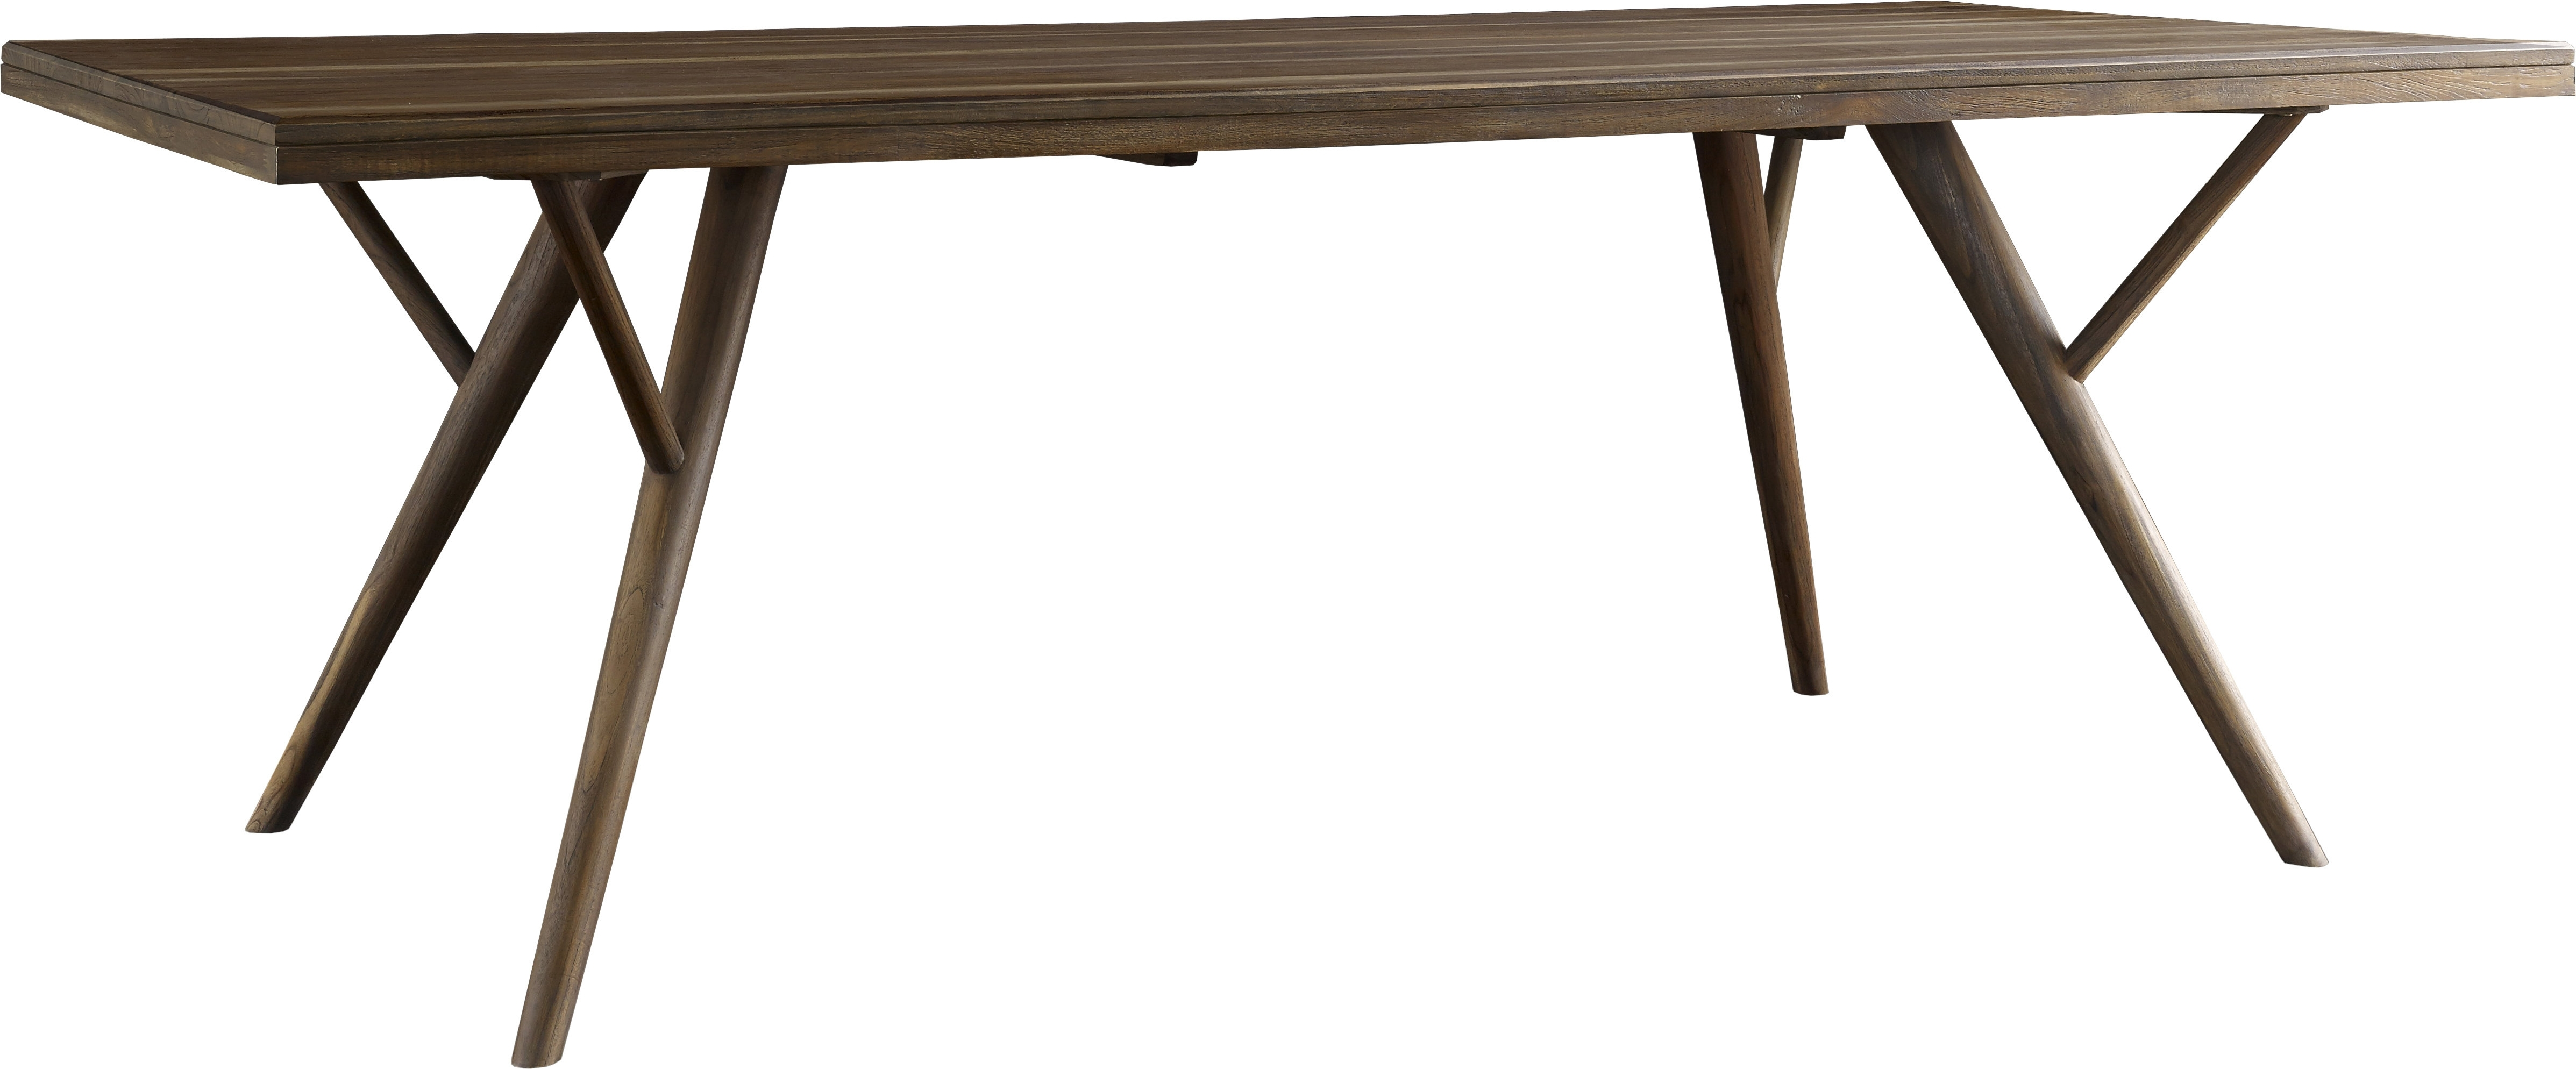 Brownstone Furniture Crawford Dining Table | Wayfair For Most Up To Date Crawford Rectangle Dining Tables (View 12 of 20)